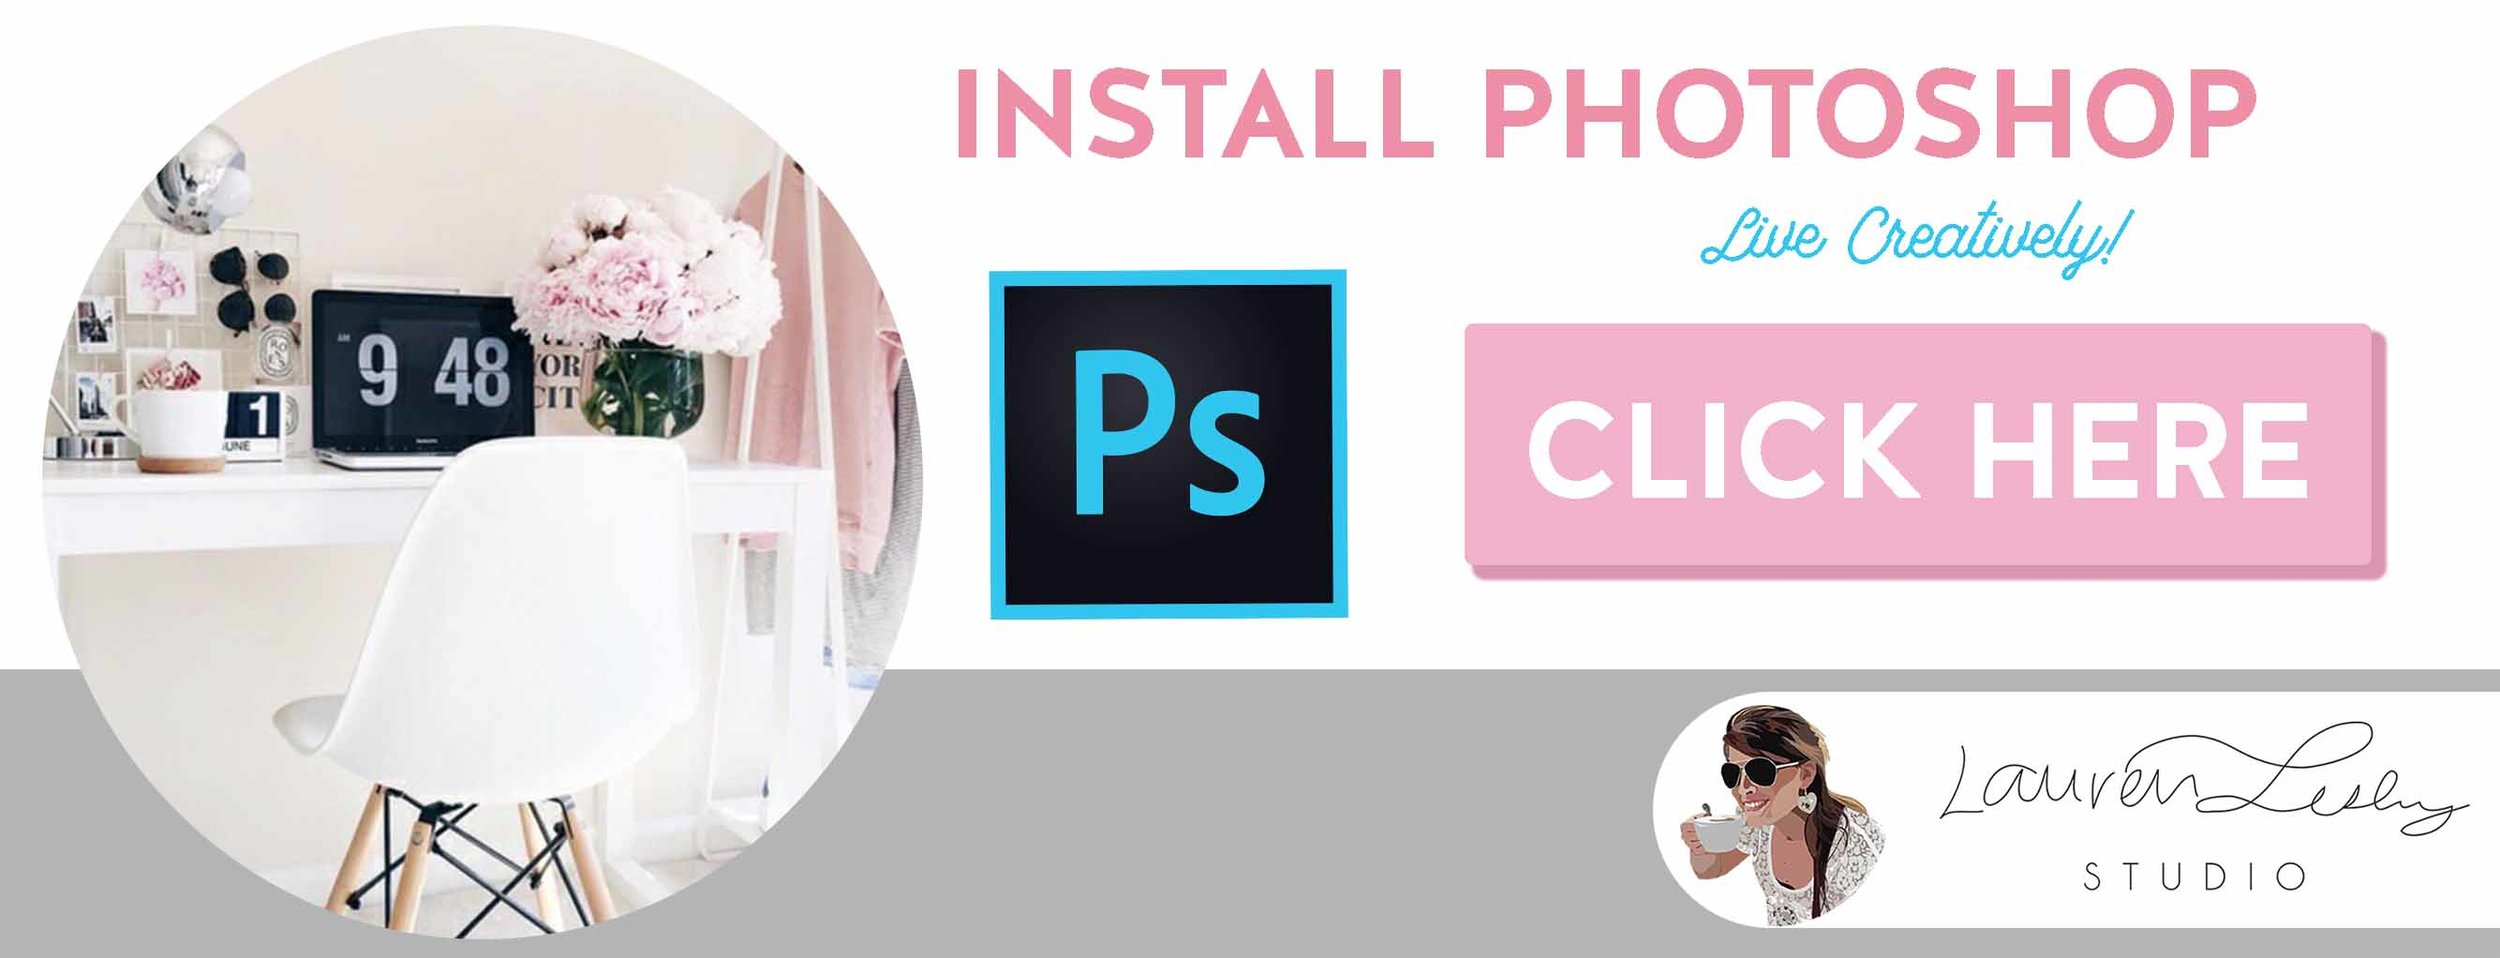 Install_Photoshop